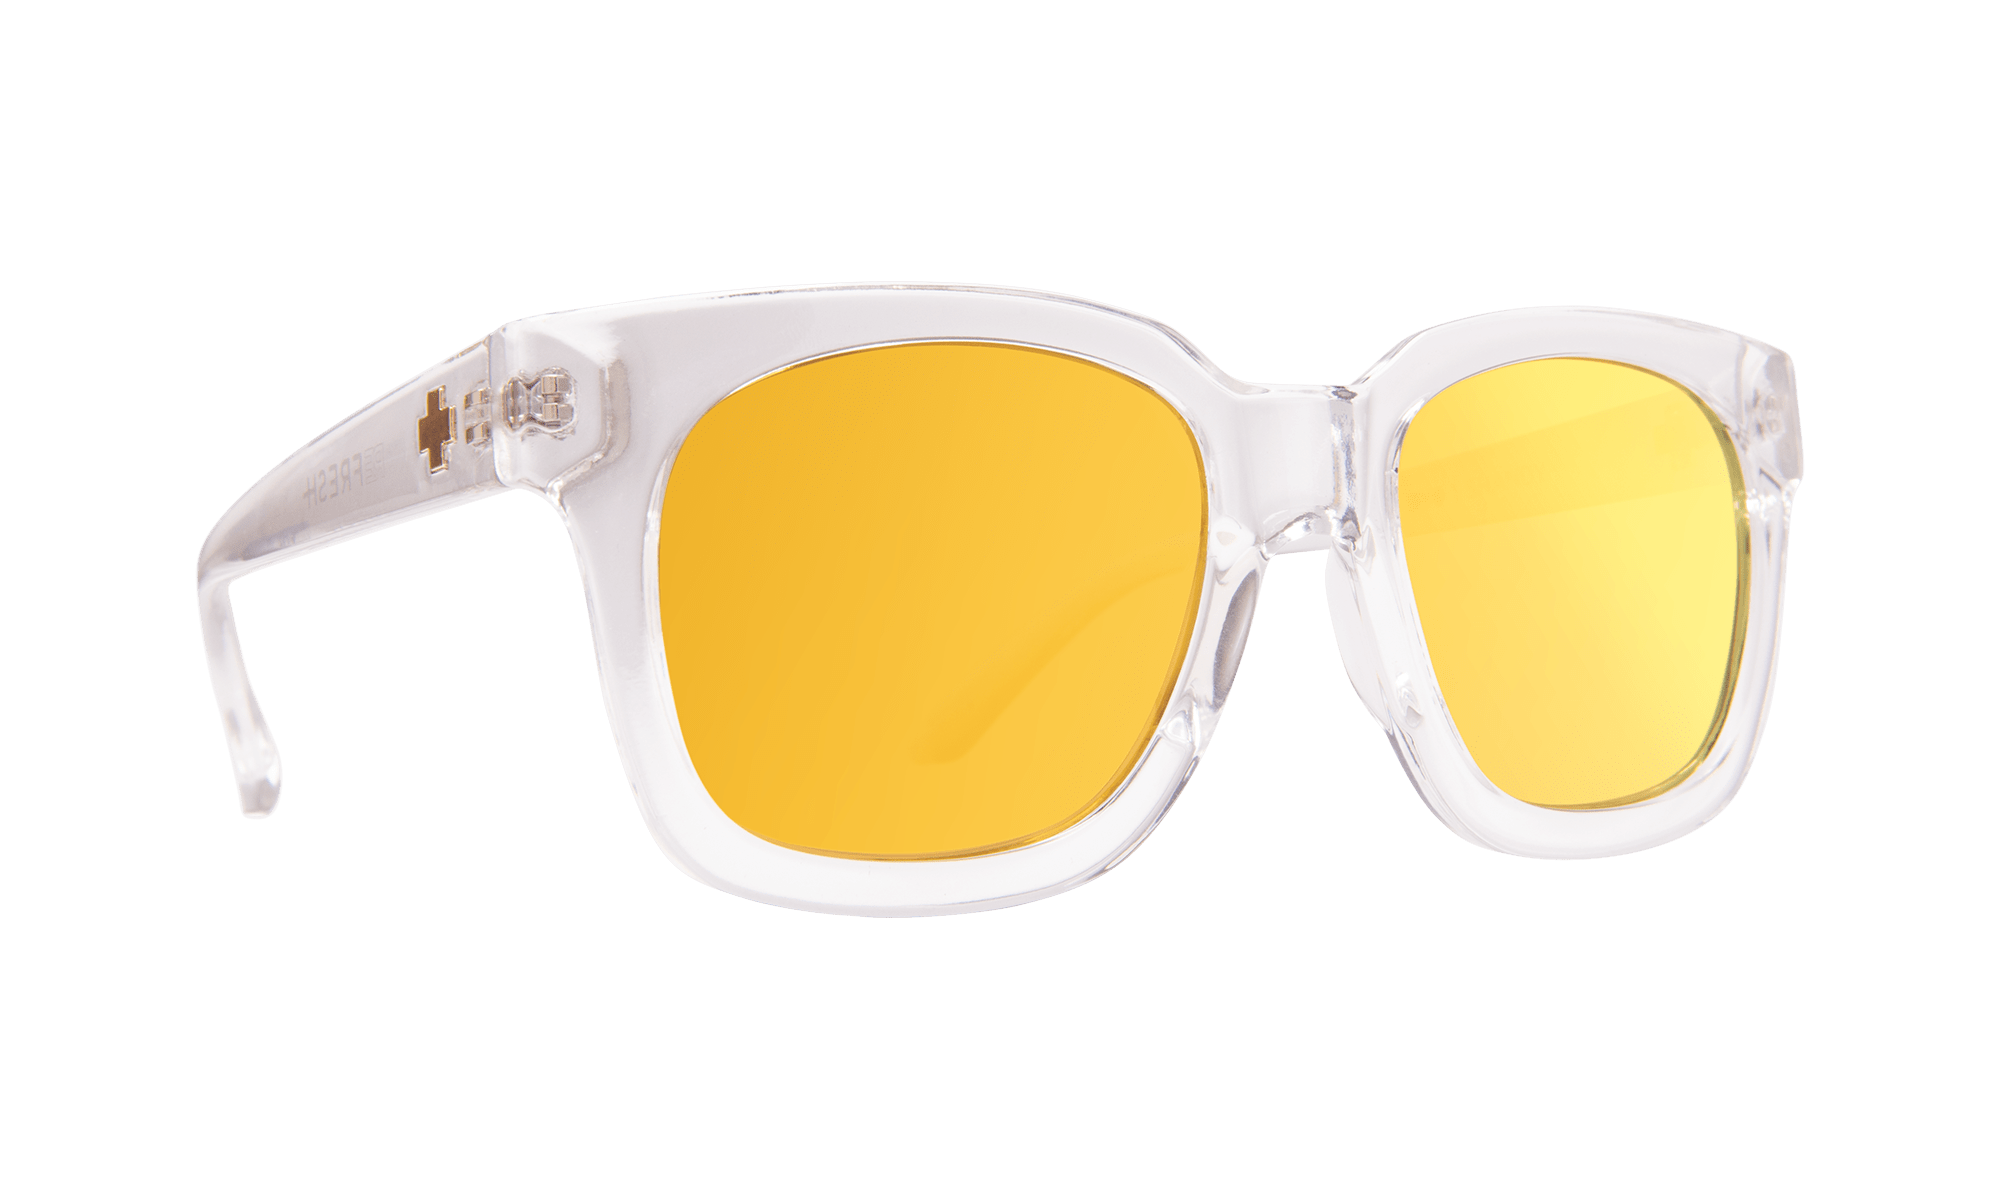 SPY Shandy  Sunglasses  Gray with Gold Mirror  52-20-147